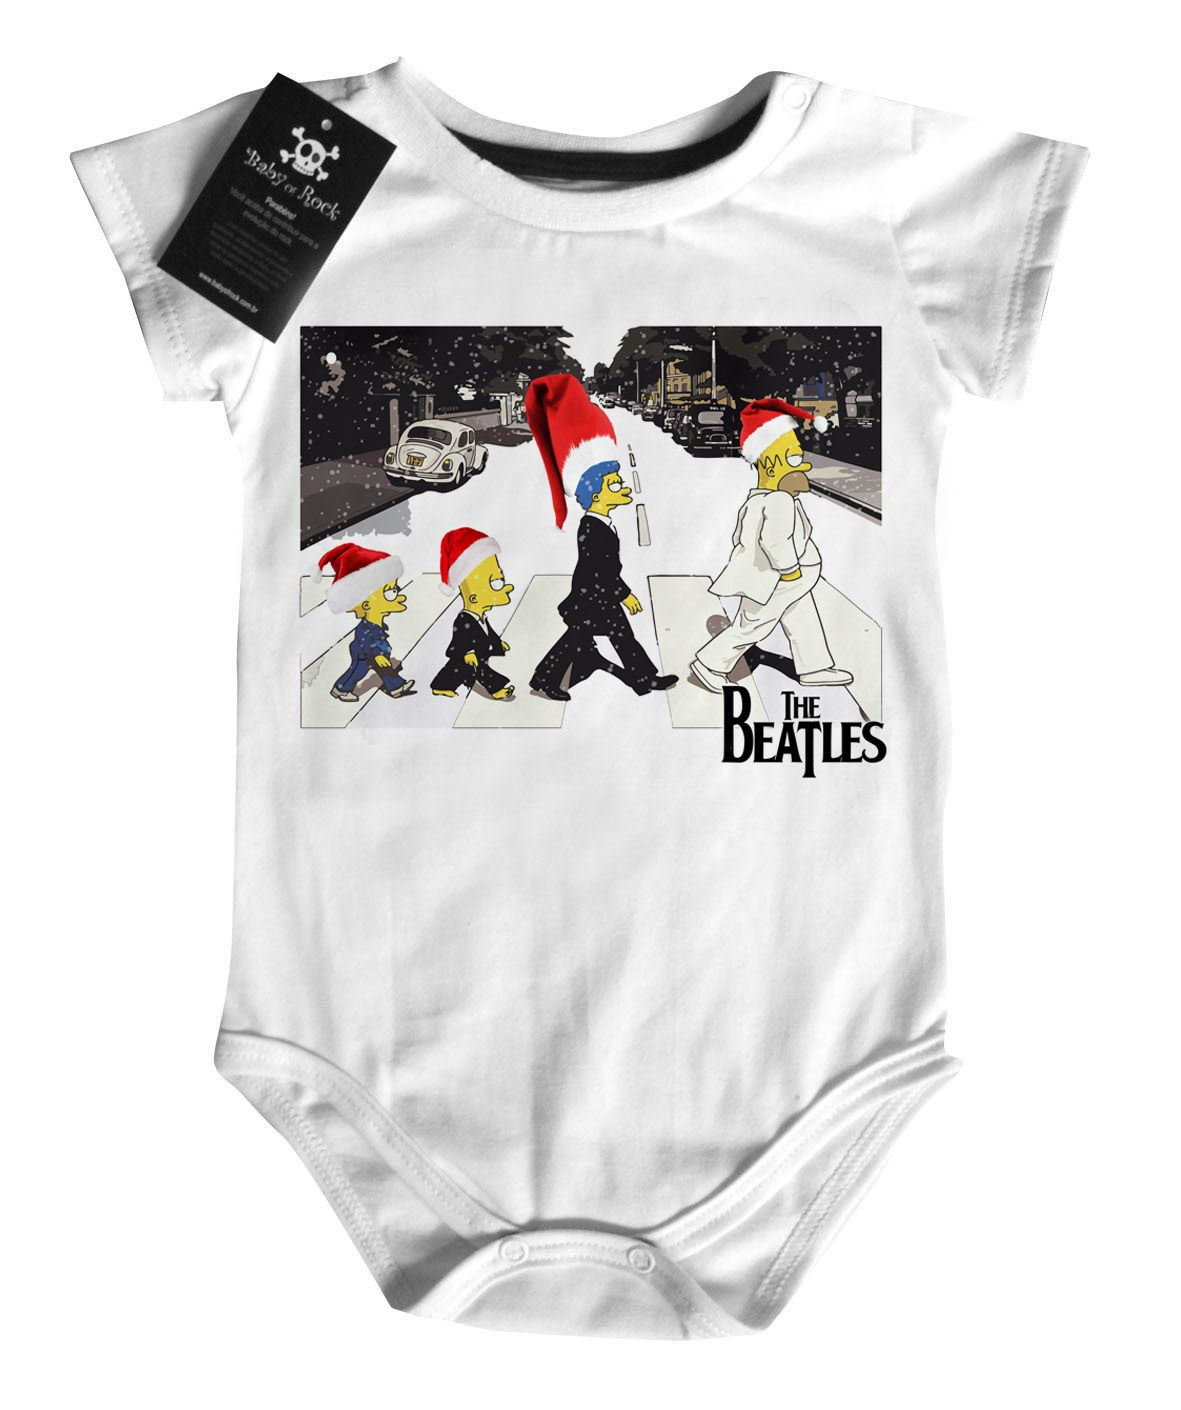 Body Bebe de  Rock Natal - The Beatles Simpsons - White - Baby Monster S/A